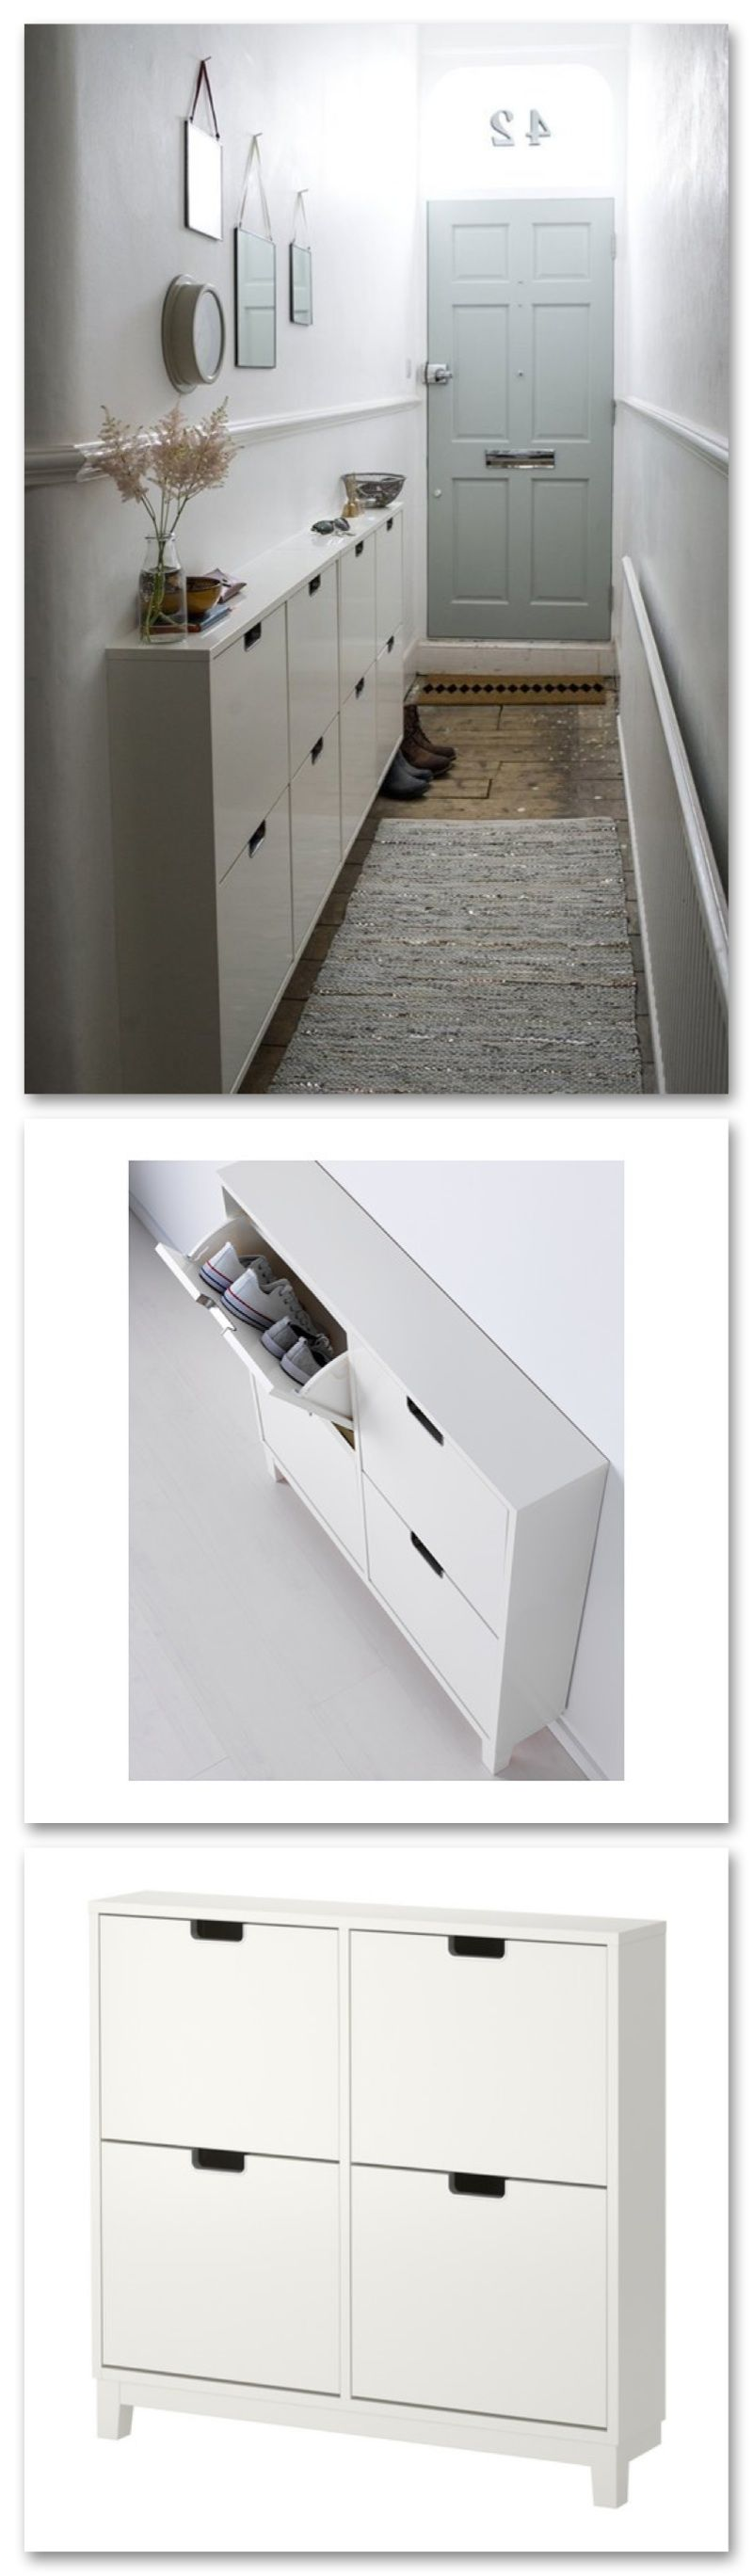 New Hallway Shoe Storage